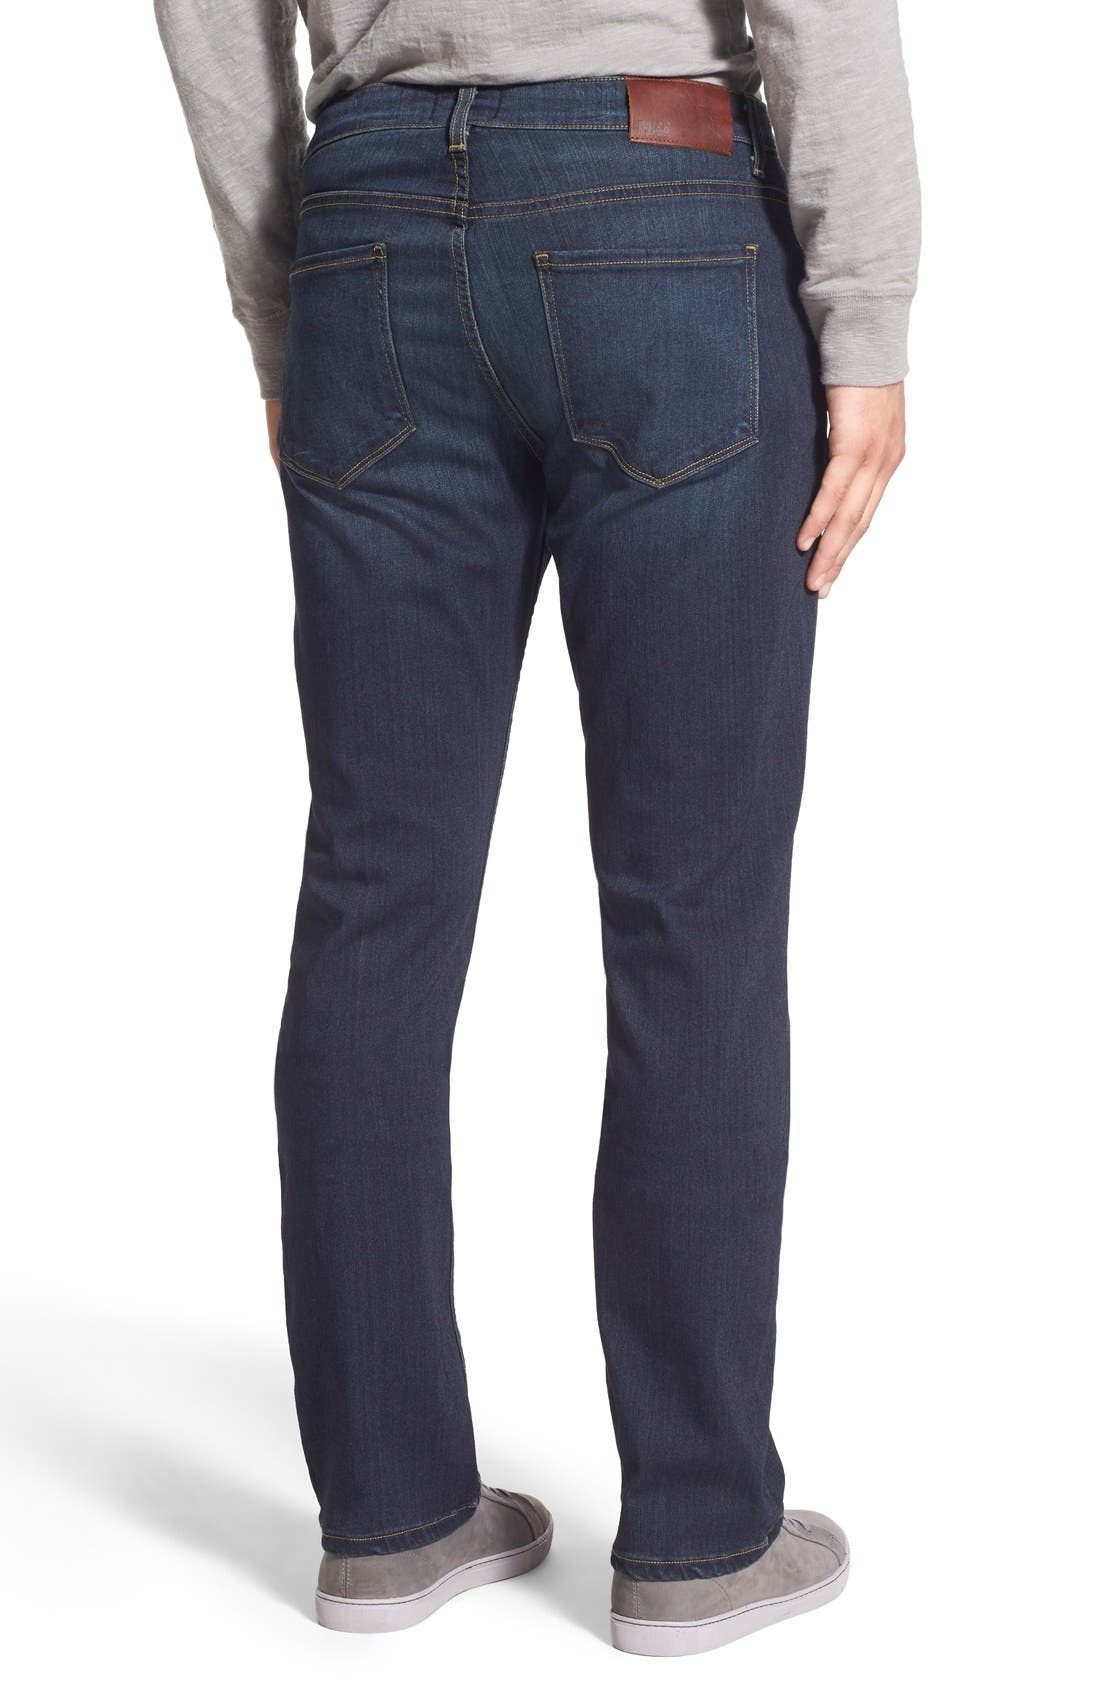 'Normandie' Straight Leg Jeans,                             Alternate thumbnail 2, color,                             RIGBY